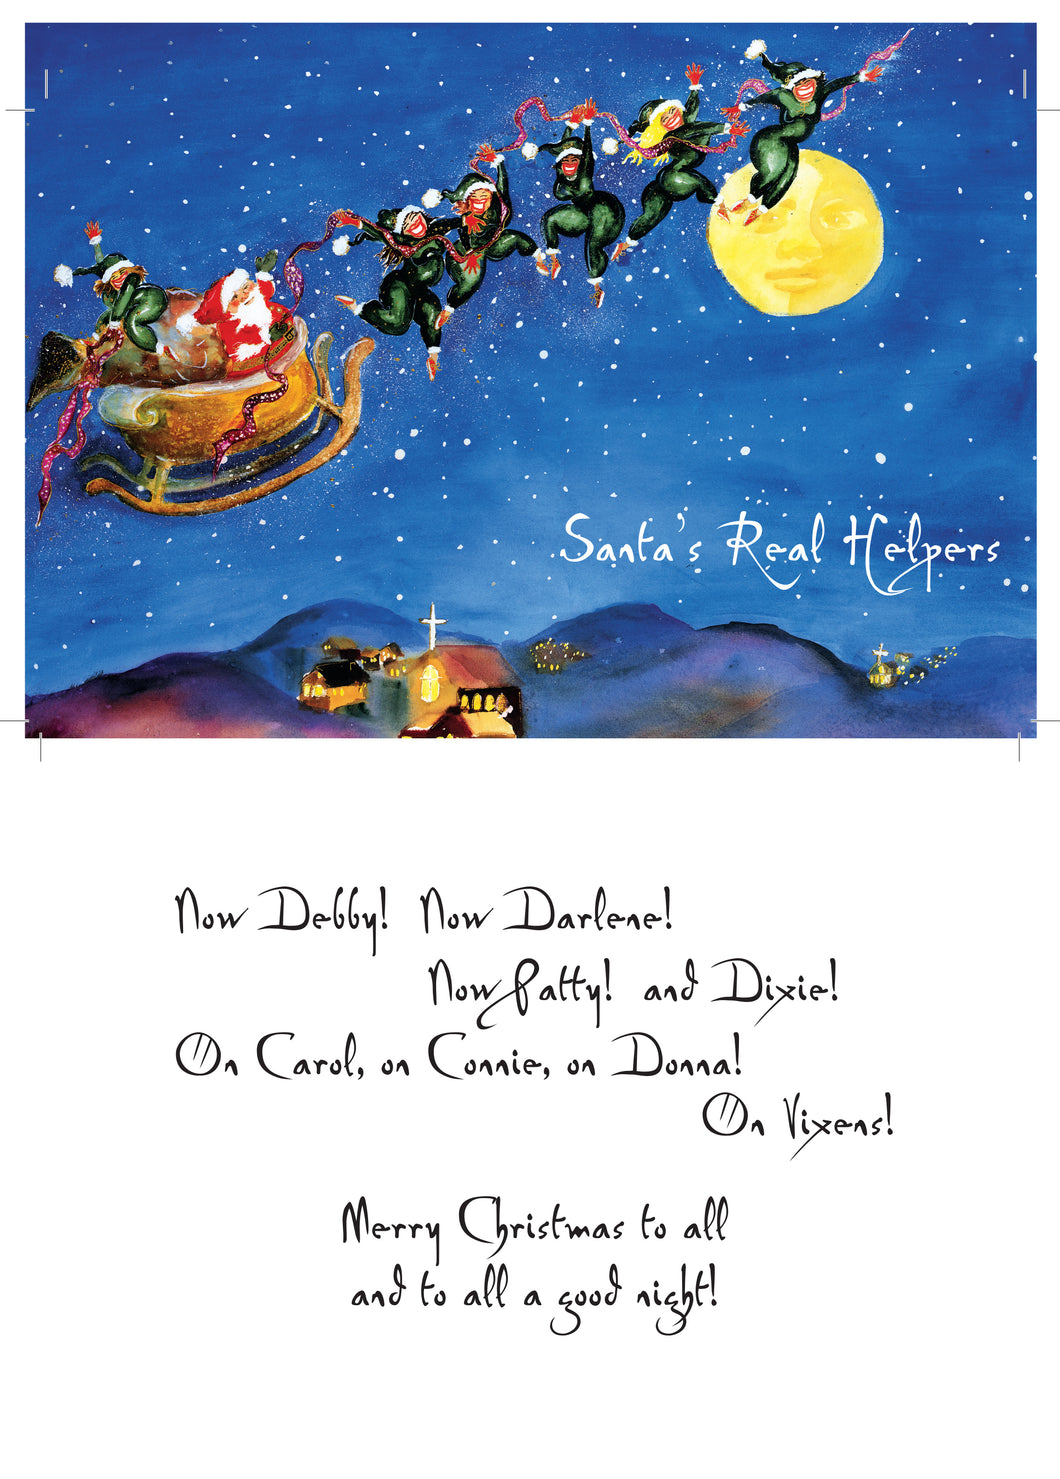 Santa's Real Helpers greeting card